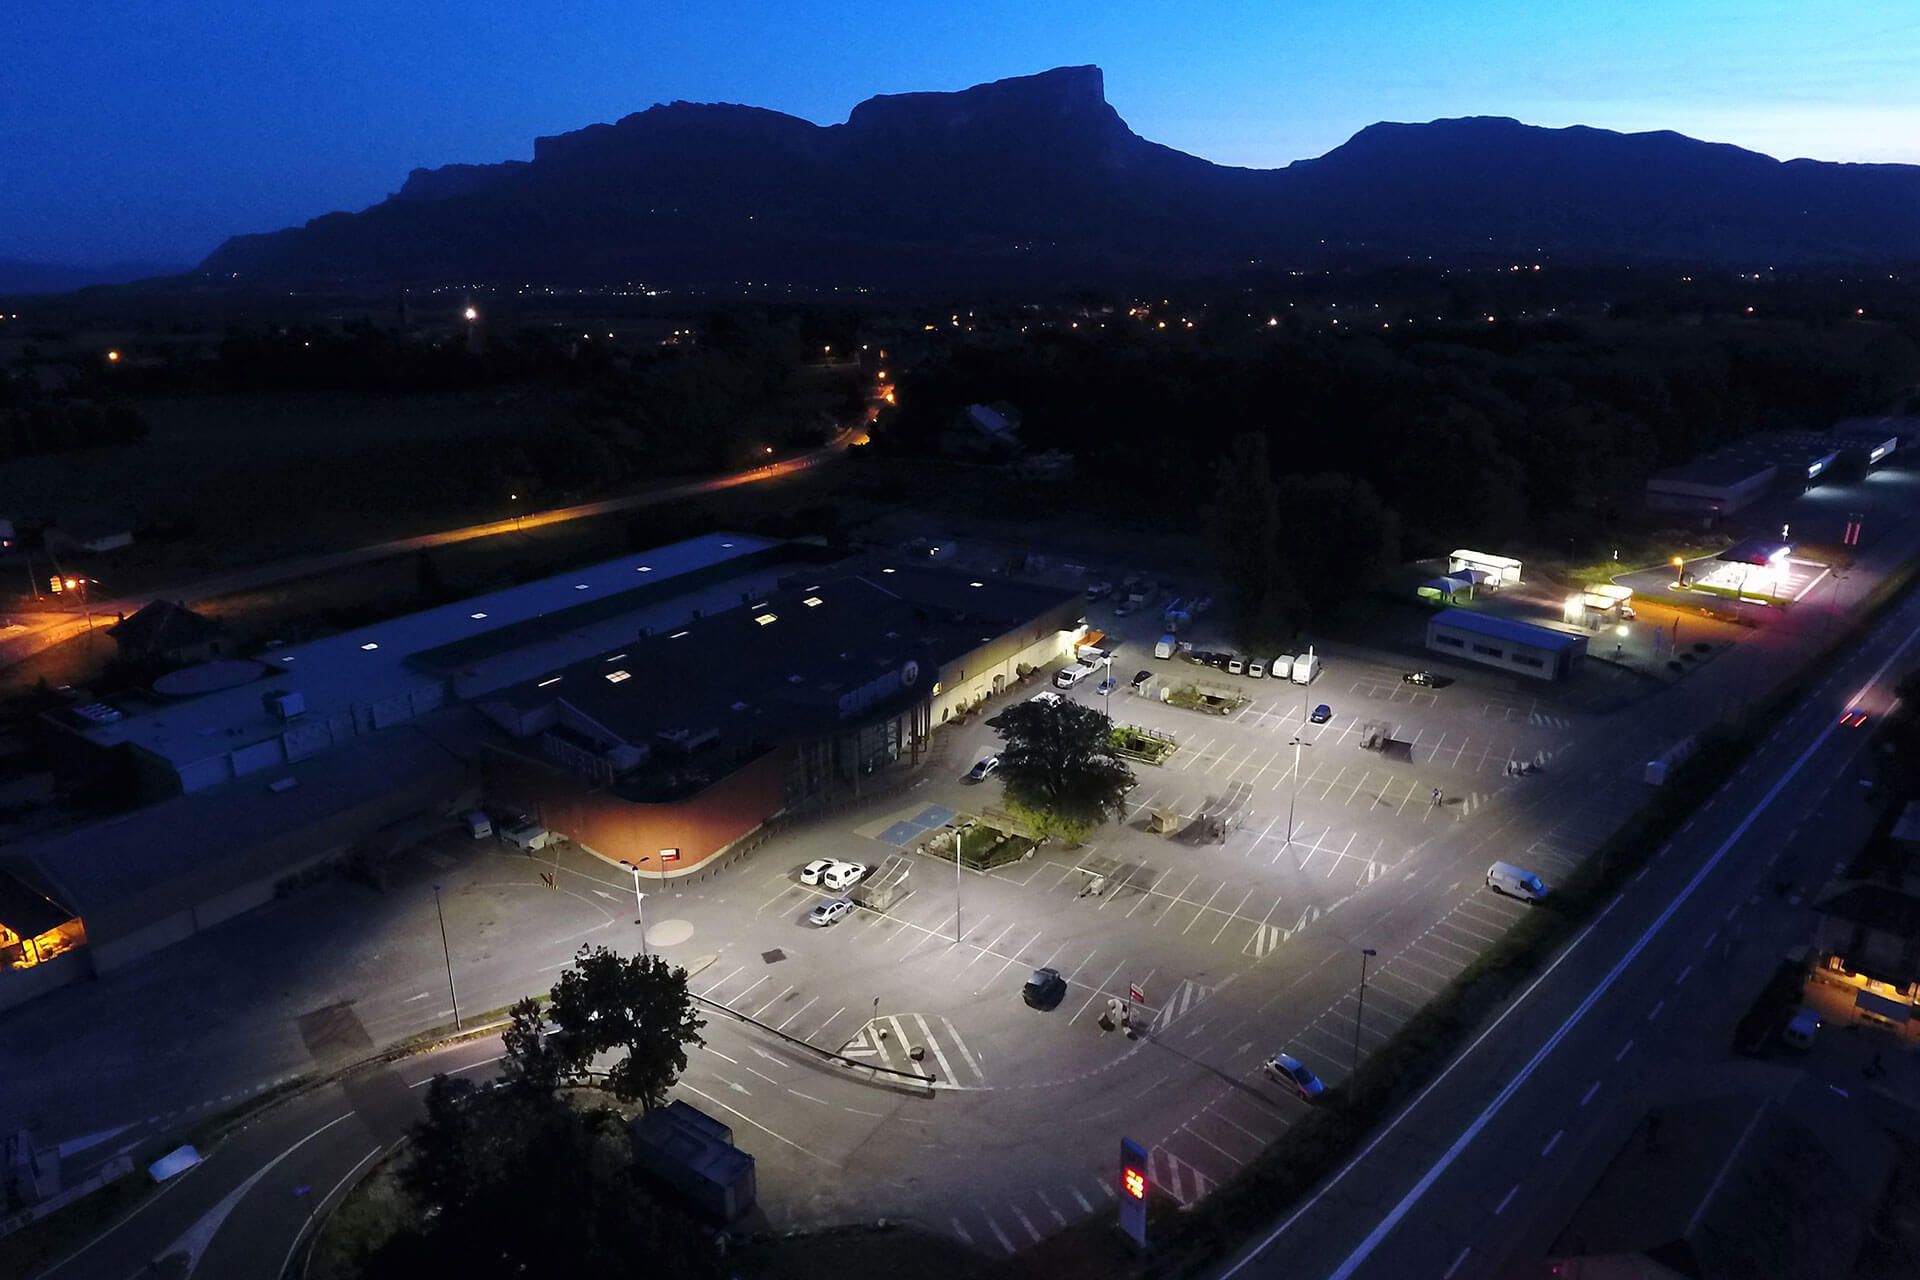 Schréder outdoor lighting solution ensures a safe and comfortable car park for visitors to this busy supermarket in Montmelian